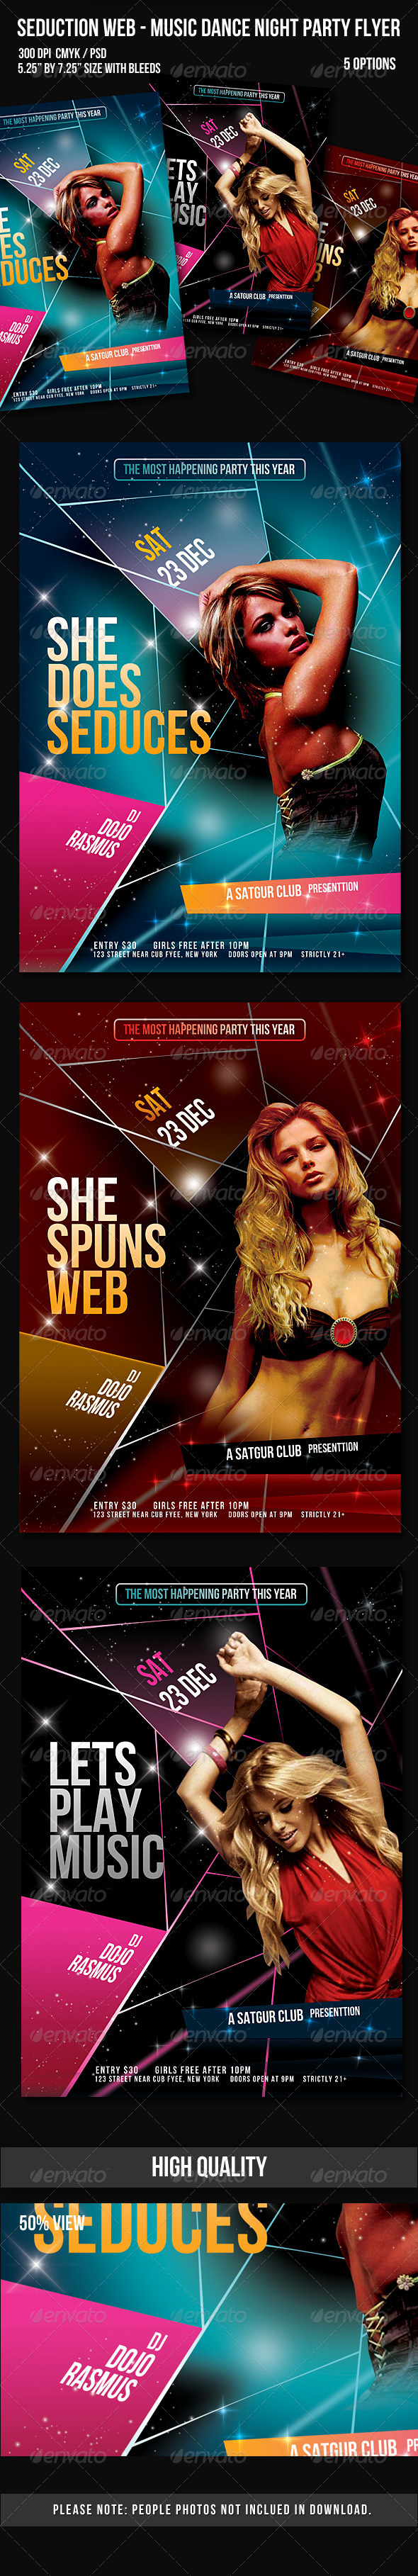 Graphic River Seduction Web Music Dance Night Party Flyer Print Templates -  Flyers  Events  Clubs & Parties 842335